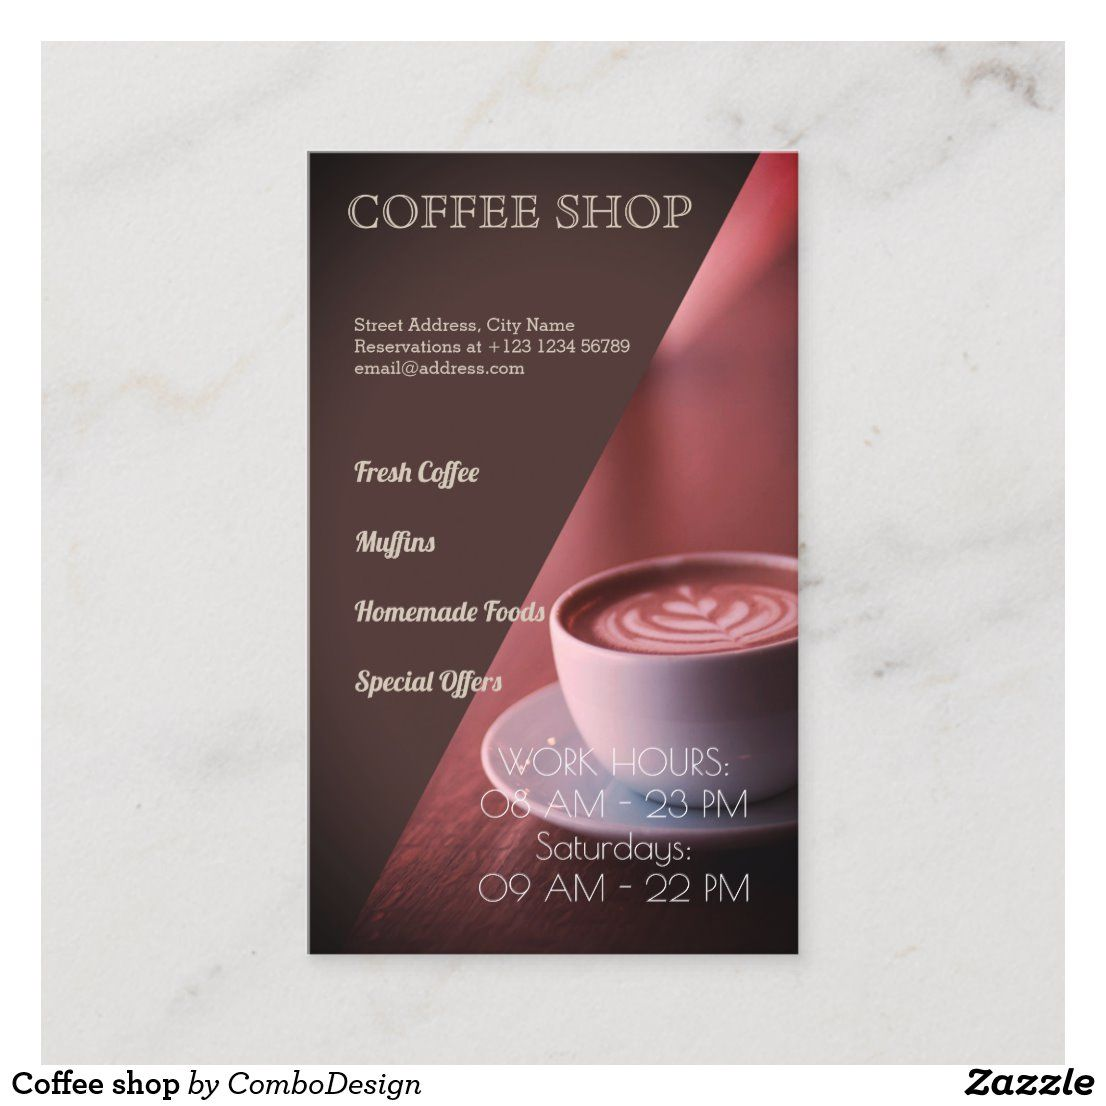 Coffee Shop Business Card Zazzle Com In 2020 Coffee Shop Business Card Coffee Shop Business Coffee Shop